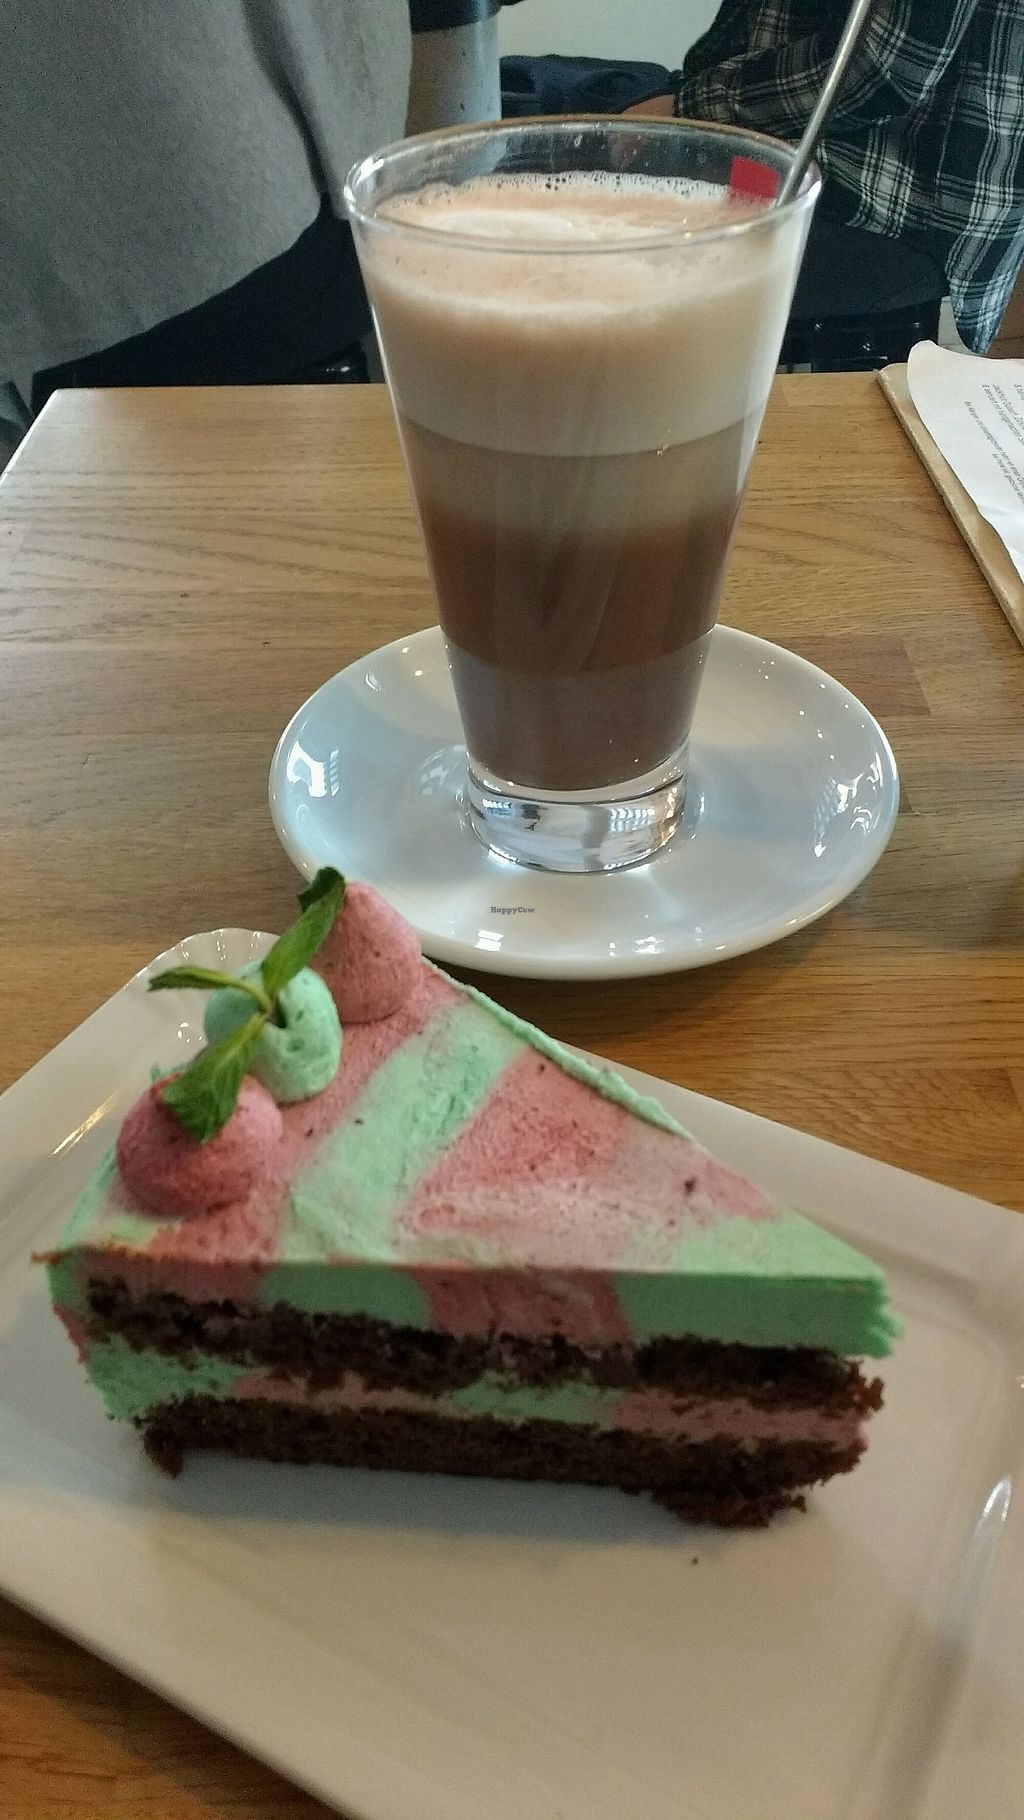 """Photo of Zom Schleggiga Egg  by <a href=""""/members/profile/lilScorpio"""">lilScorpio</a> <br/>hot chocolate and raspberry (?)-mint pie! <br/> March 3, 2018  - <a href='/contact/abuse/image/111076/366228'>Report</a>"""